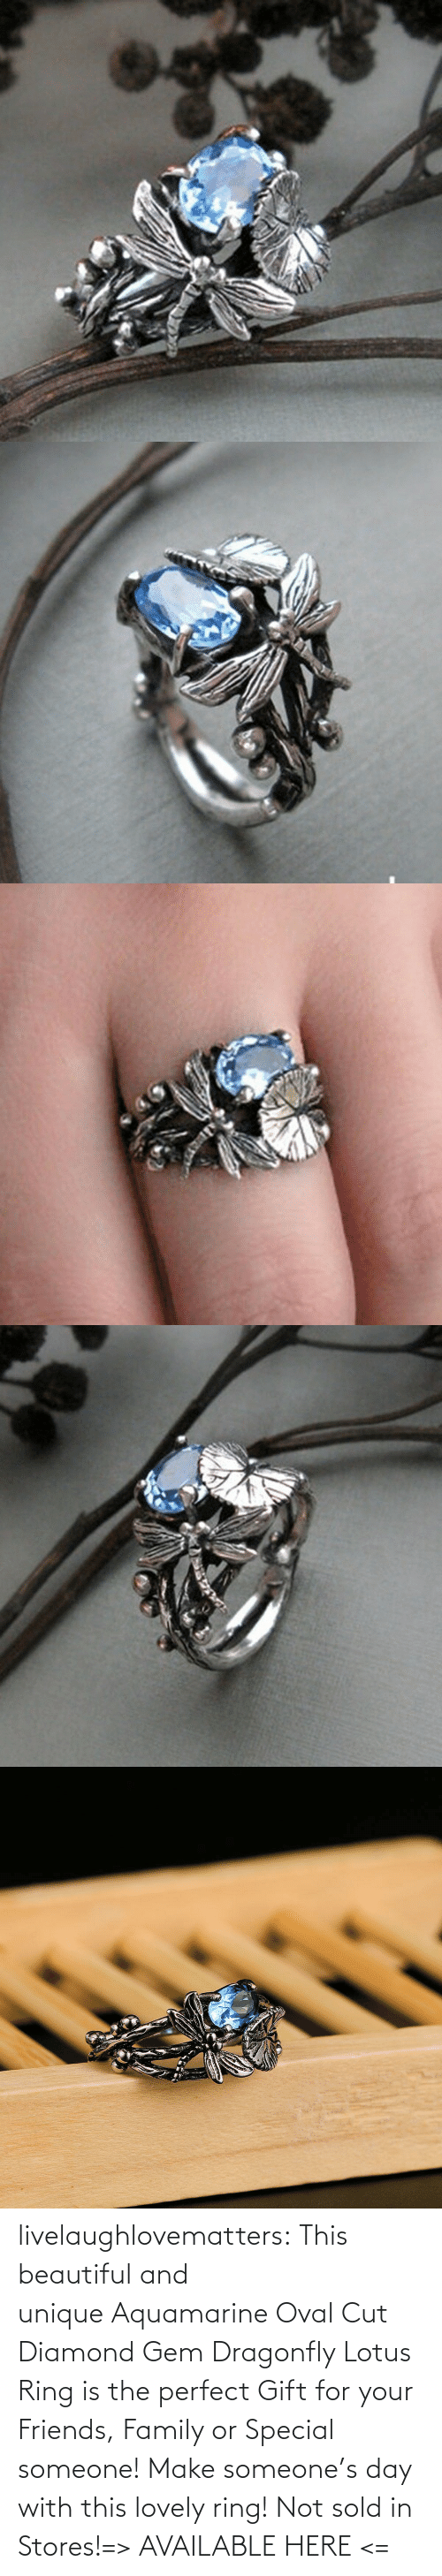 beautiful: livelaughlovematters:  This beautiful and unique Aquamarine Oval Cut Diamond Gem Dragonfly Lotus Ring is the perfect Gift for your Friends, Family or Special someone! Make someone's day with this lovely ring! Not sold in Stores!=> AVAILABLE HERE <=